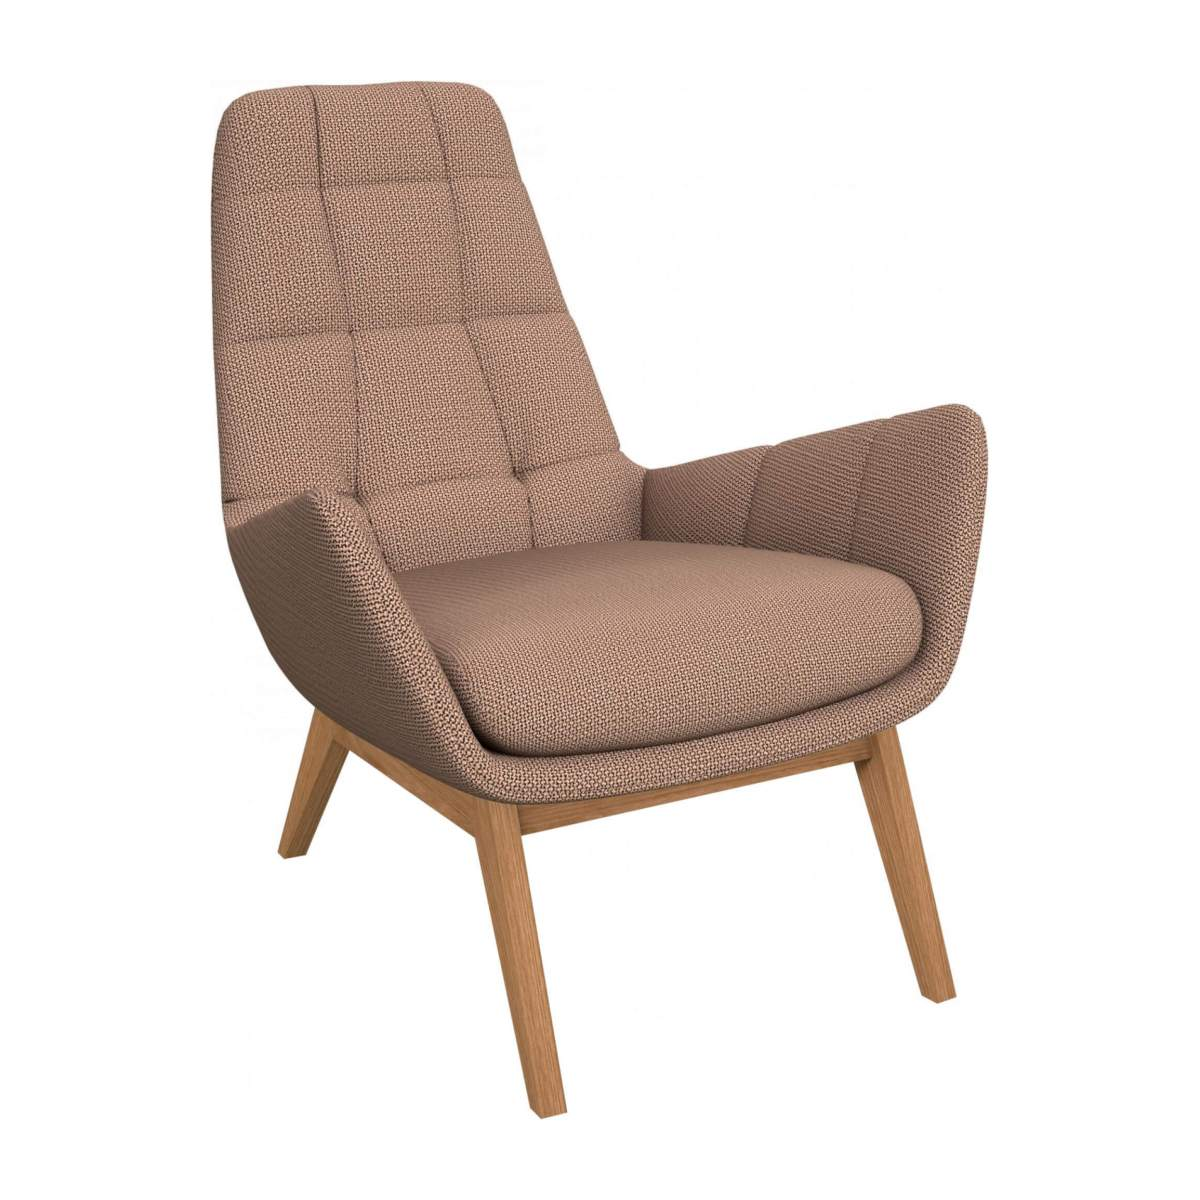 Armchair in Fasoli fabric, Jatoba brown with oak legs n°2